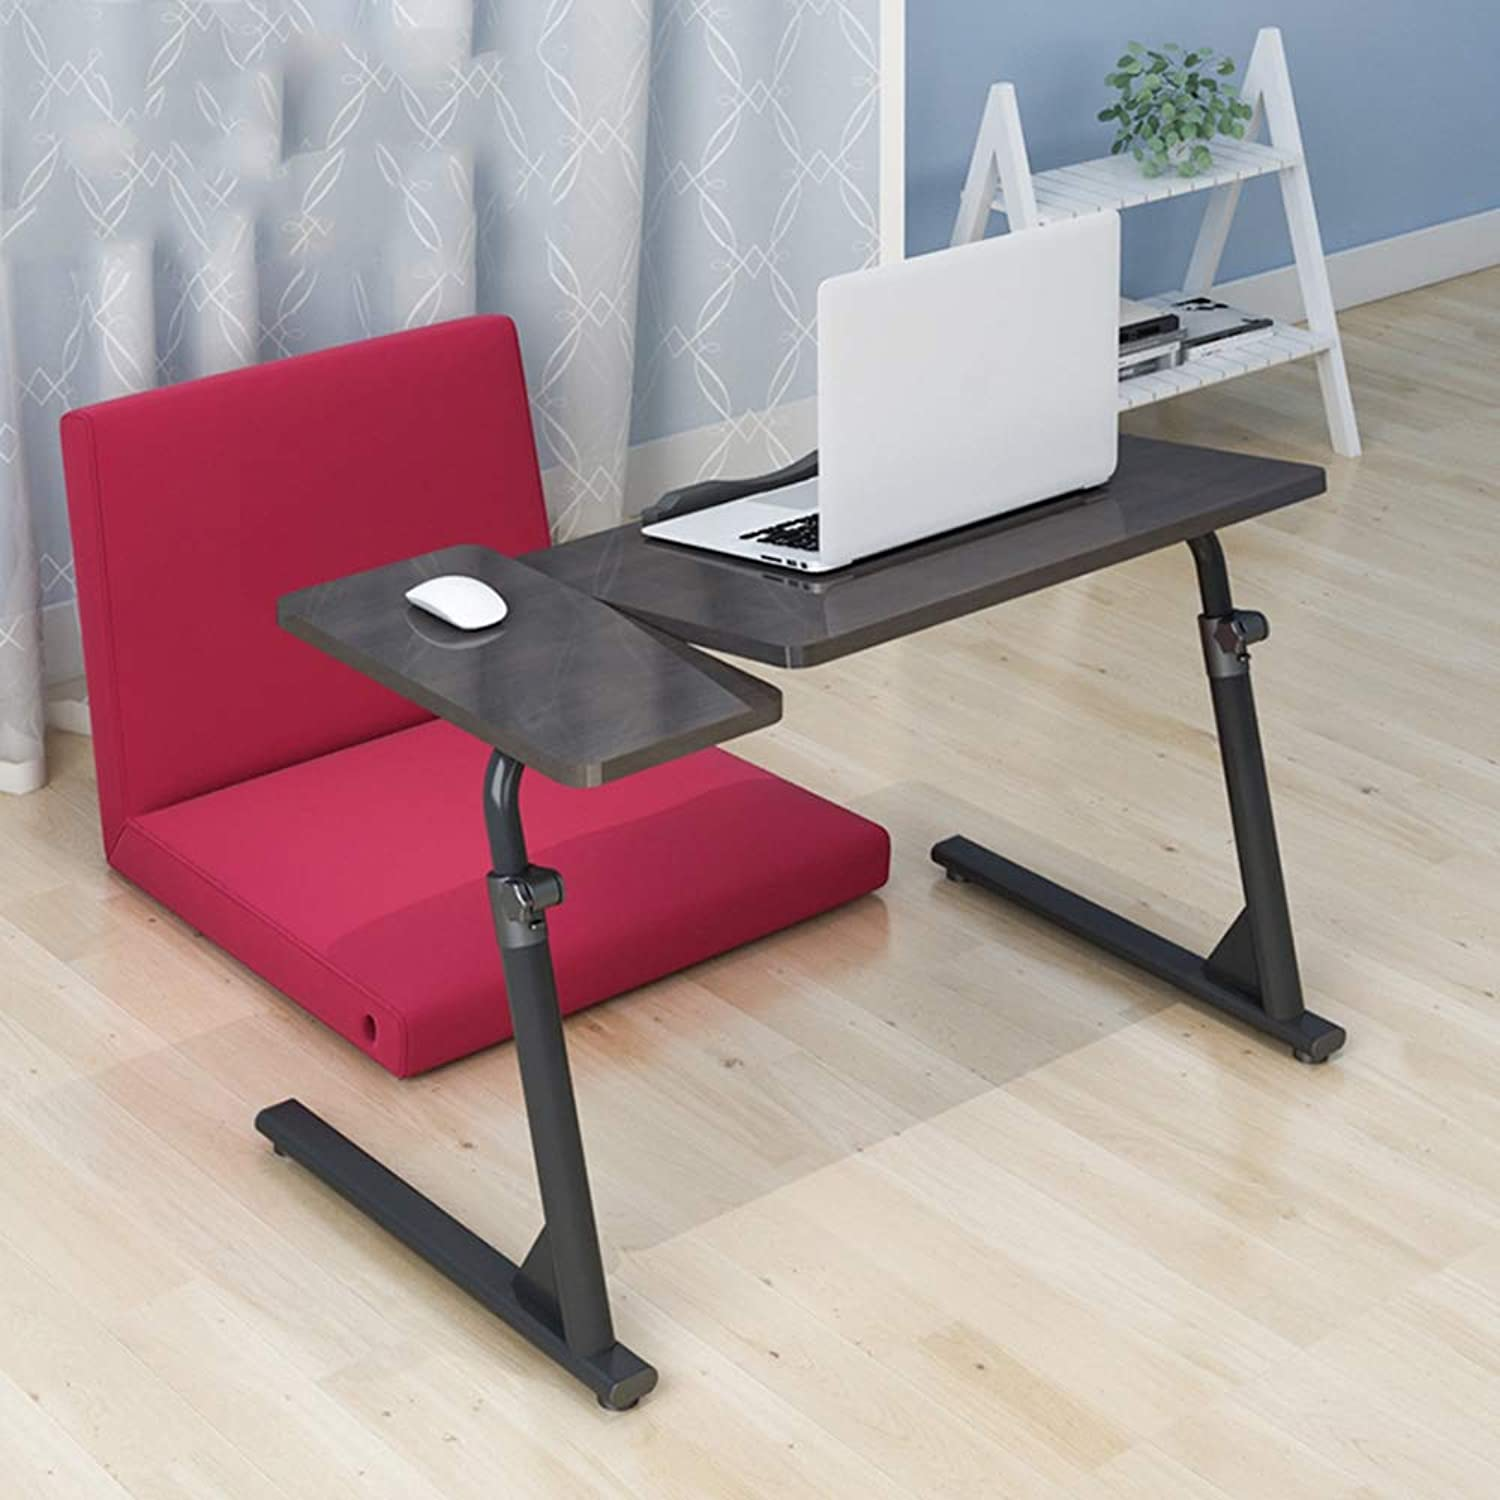 QFFL Table Bedside Breakfast Table, Lazy Table Foldable Laptop Desktop Game Table Coffee Magazine Table Lapdesks (color   Black, Size   80  40  50-76)